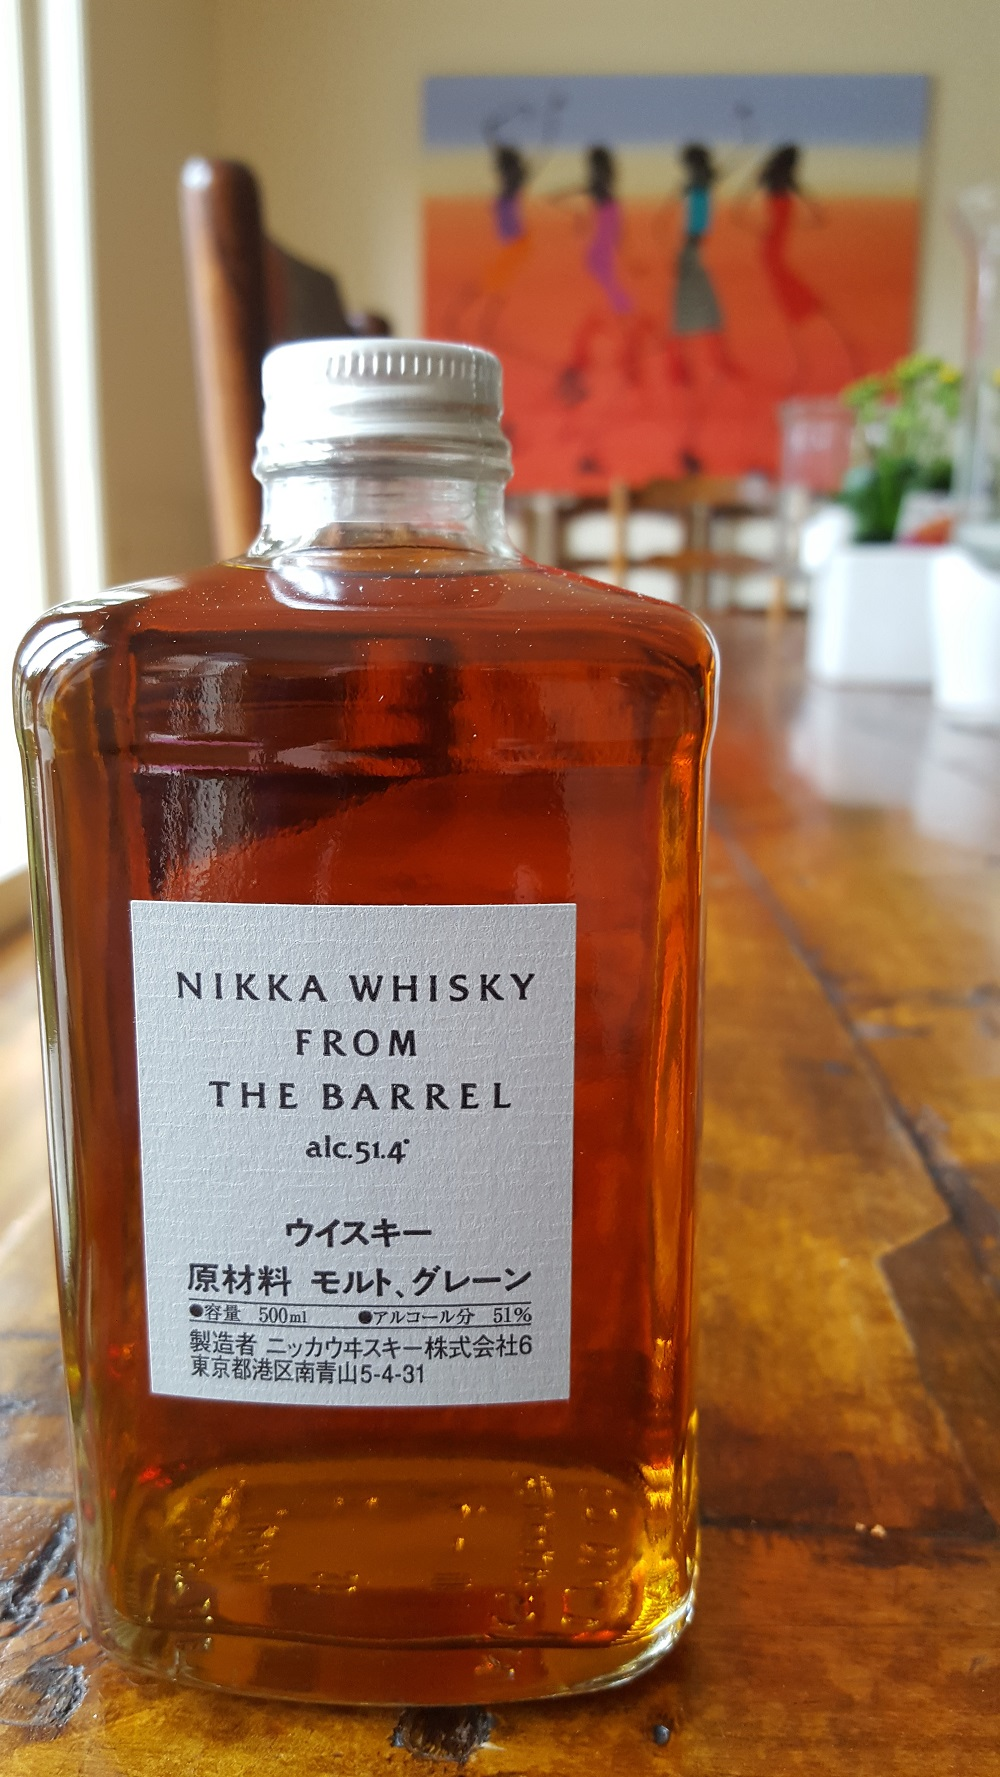 Nikka Whisky from the Yoichi Distillery